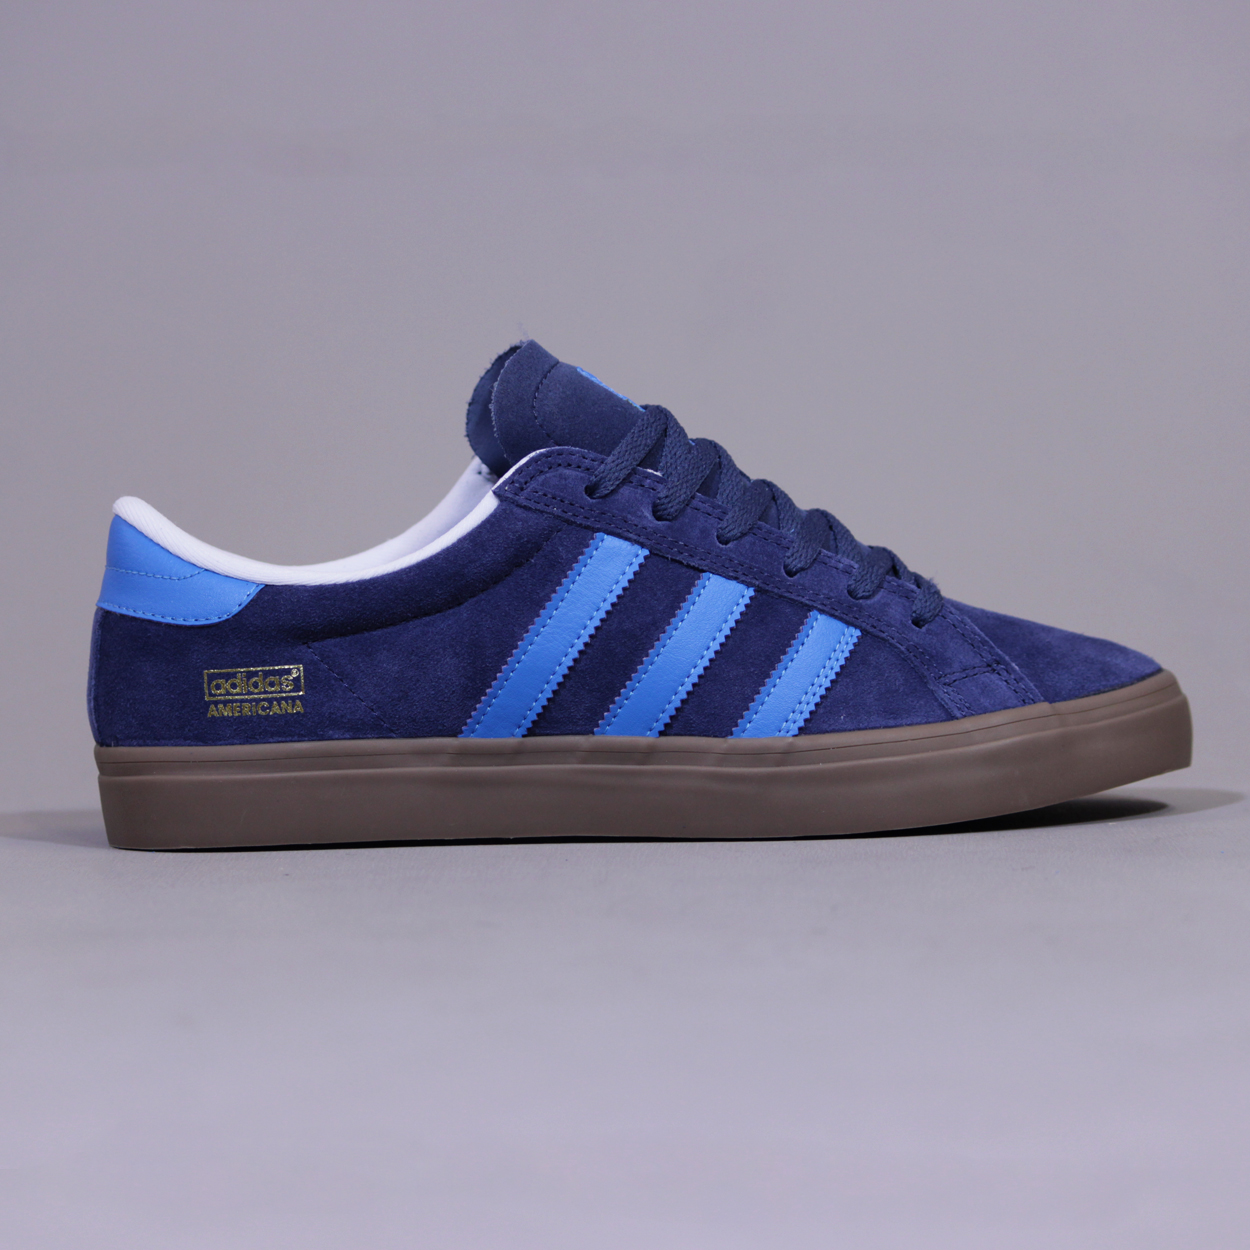 Adidas Americana Vin Low Shoes Trainers Sneakers University Blue £30.00 80a3bd8eee30